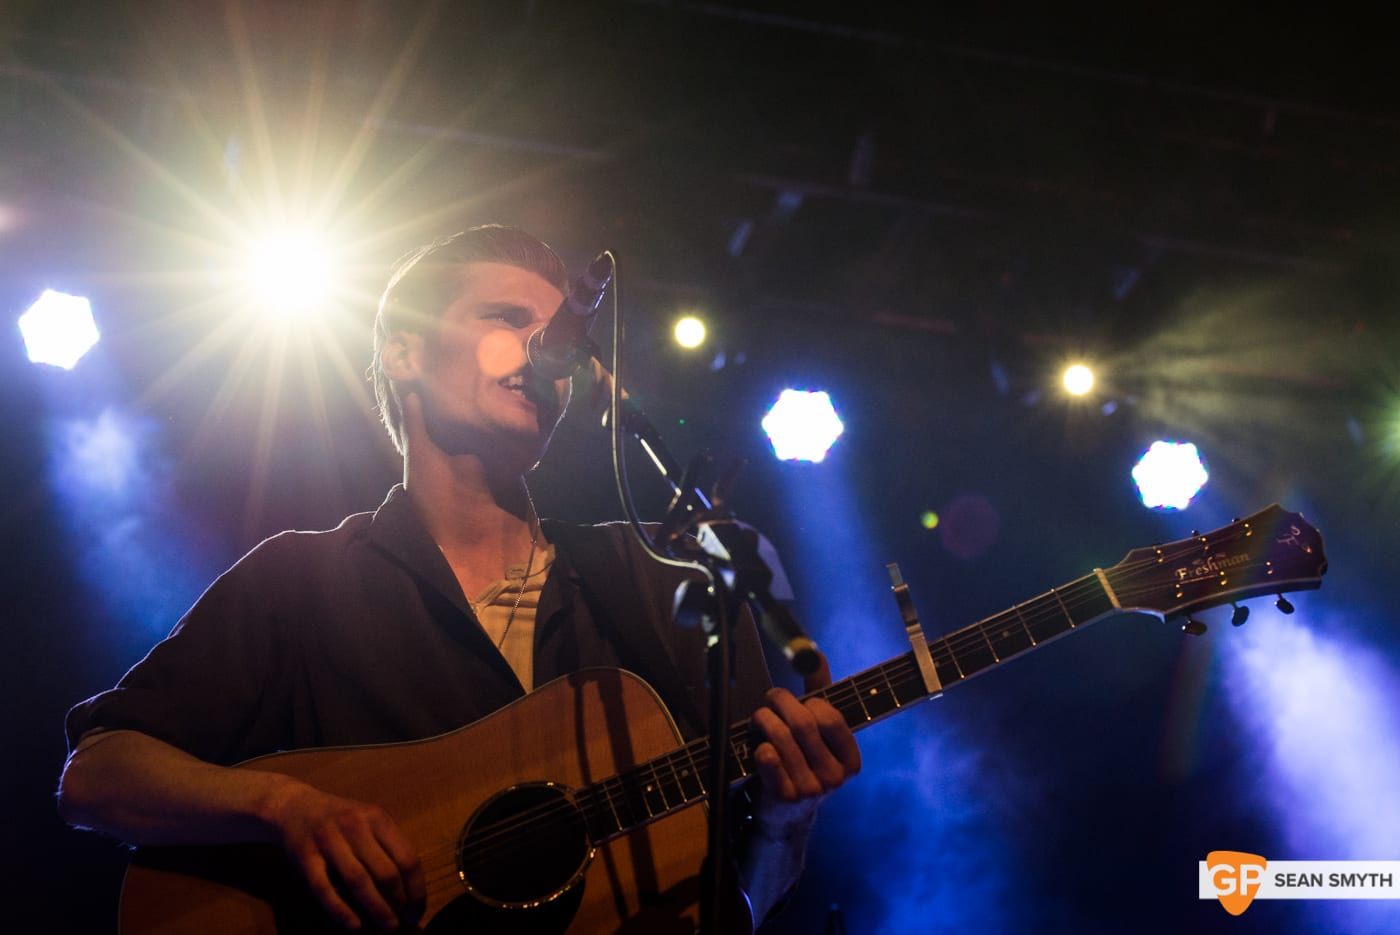 hudson-taylor-at-the-olympia-theatre-26-2-15-by-sean-smyth-23-of-26_16569362190_o